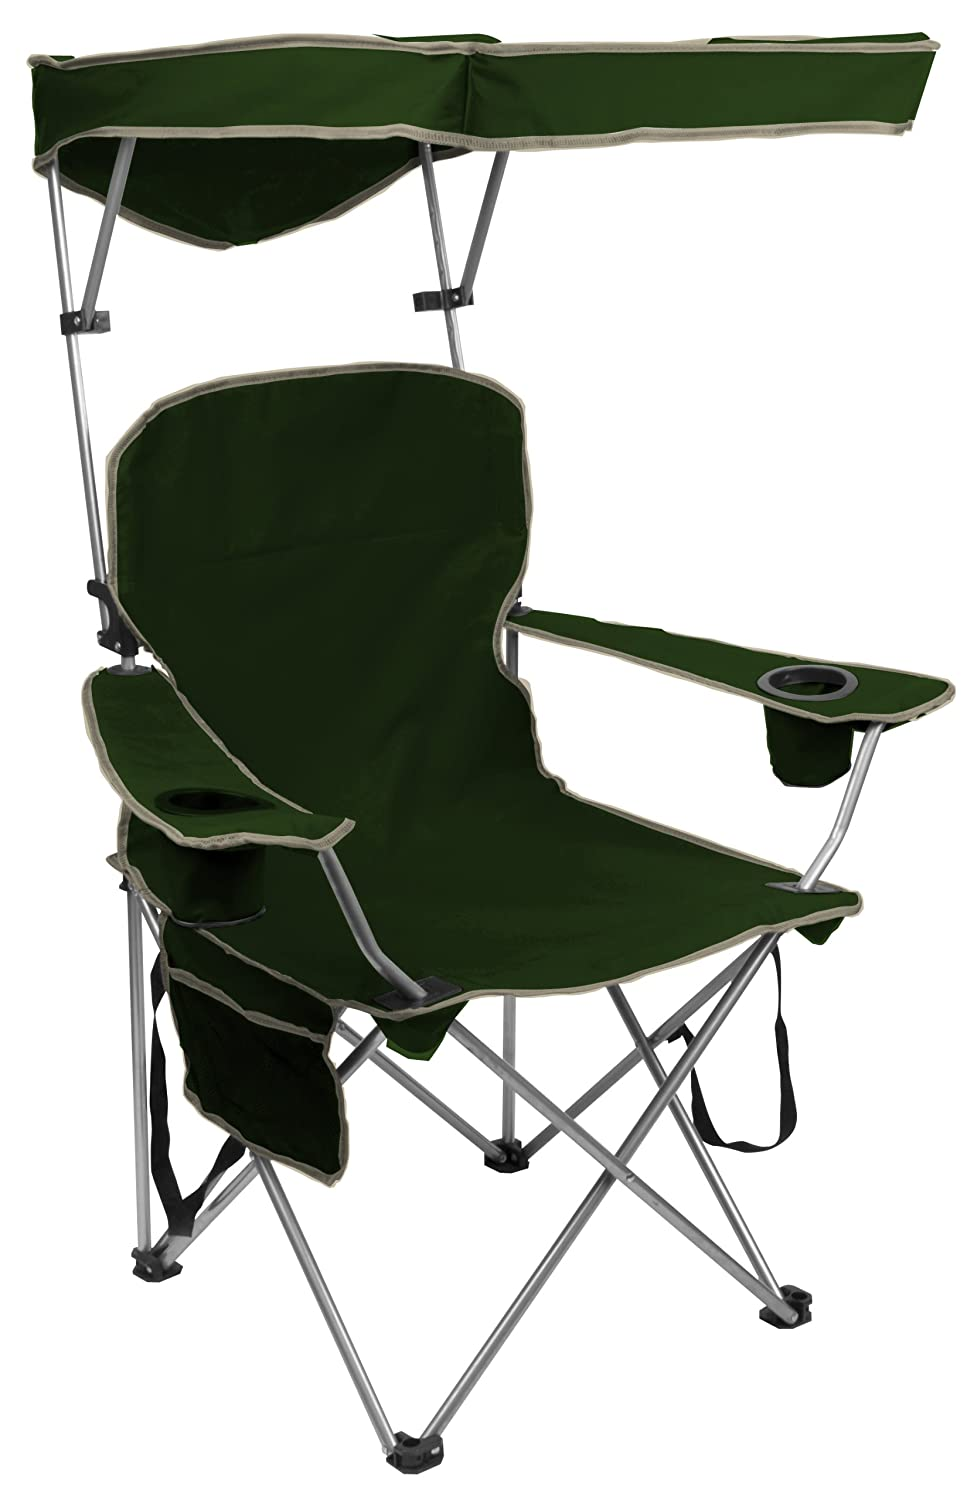 Bravo Sports Quik Shade Comfort Portable outdoor Camping